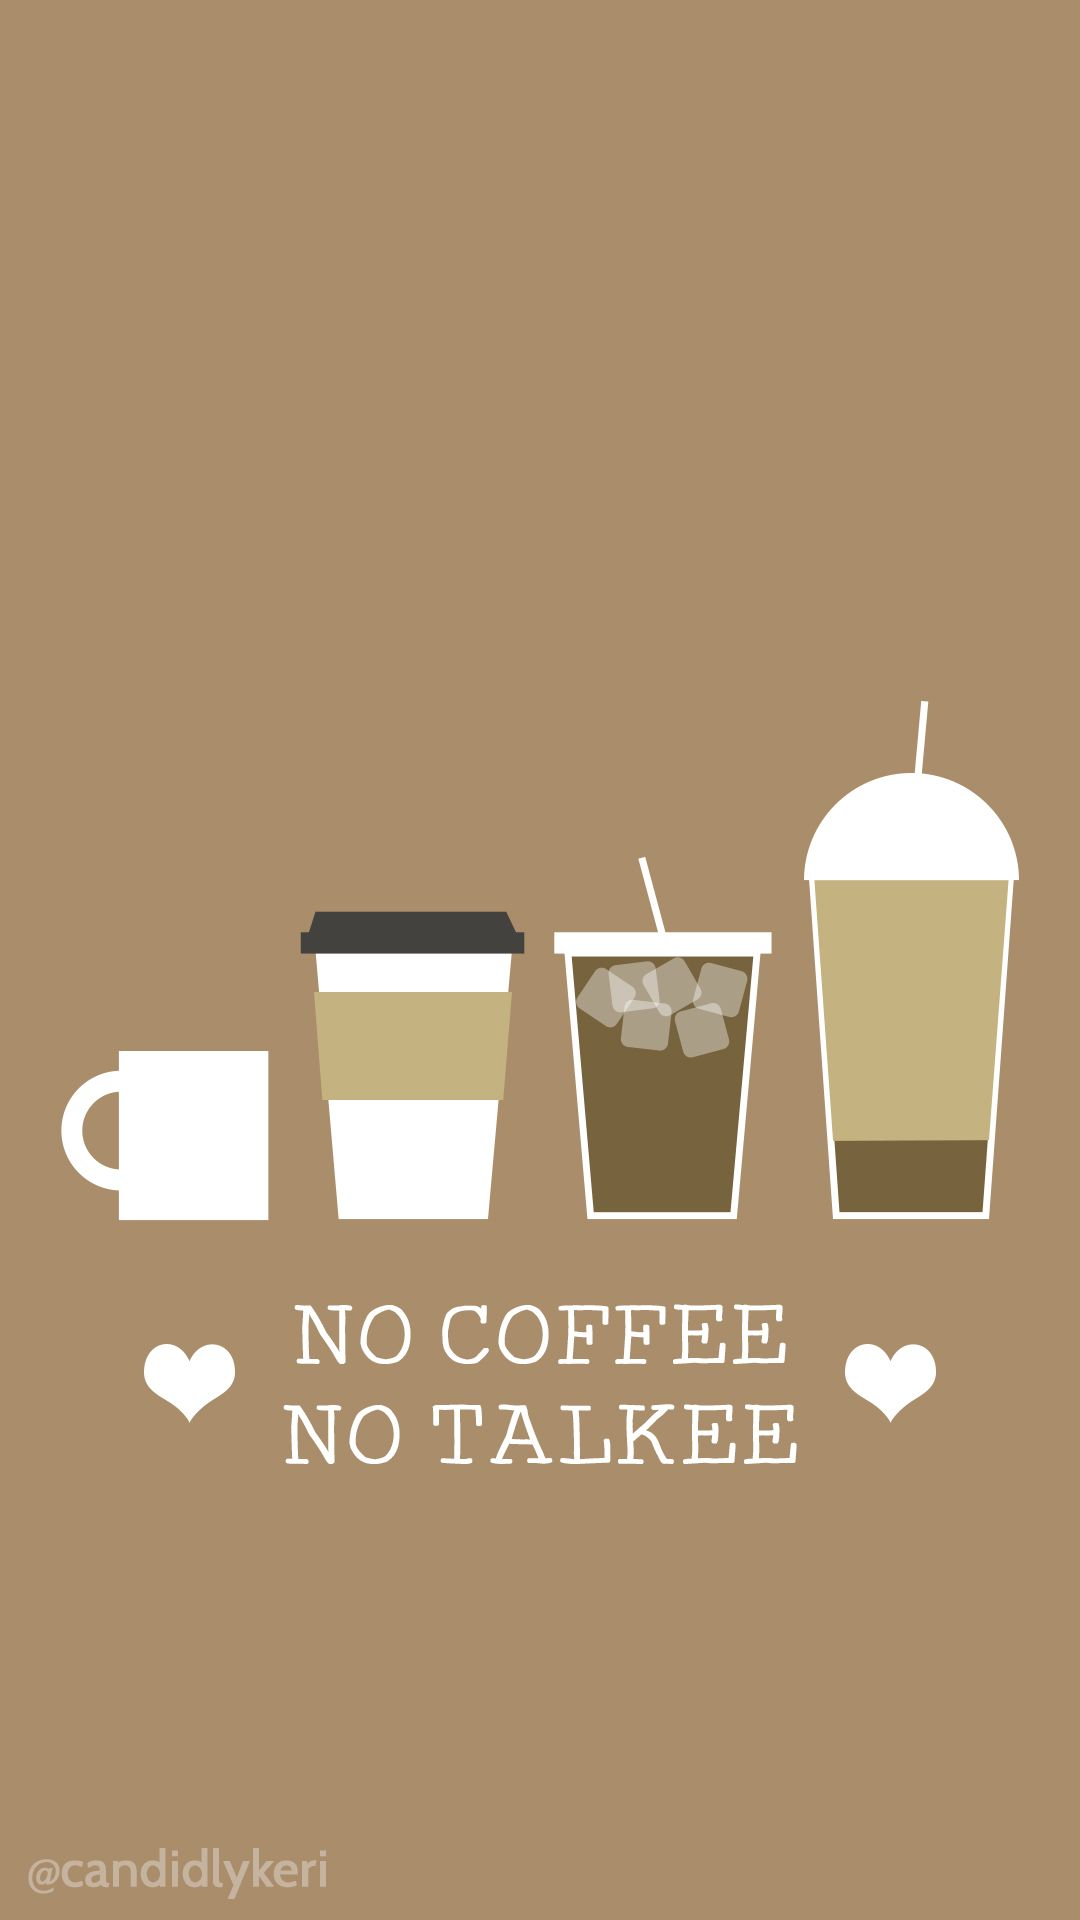 No Coffee No Talkee cute cartoon coffee latte iced coffee